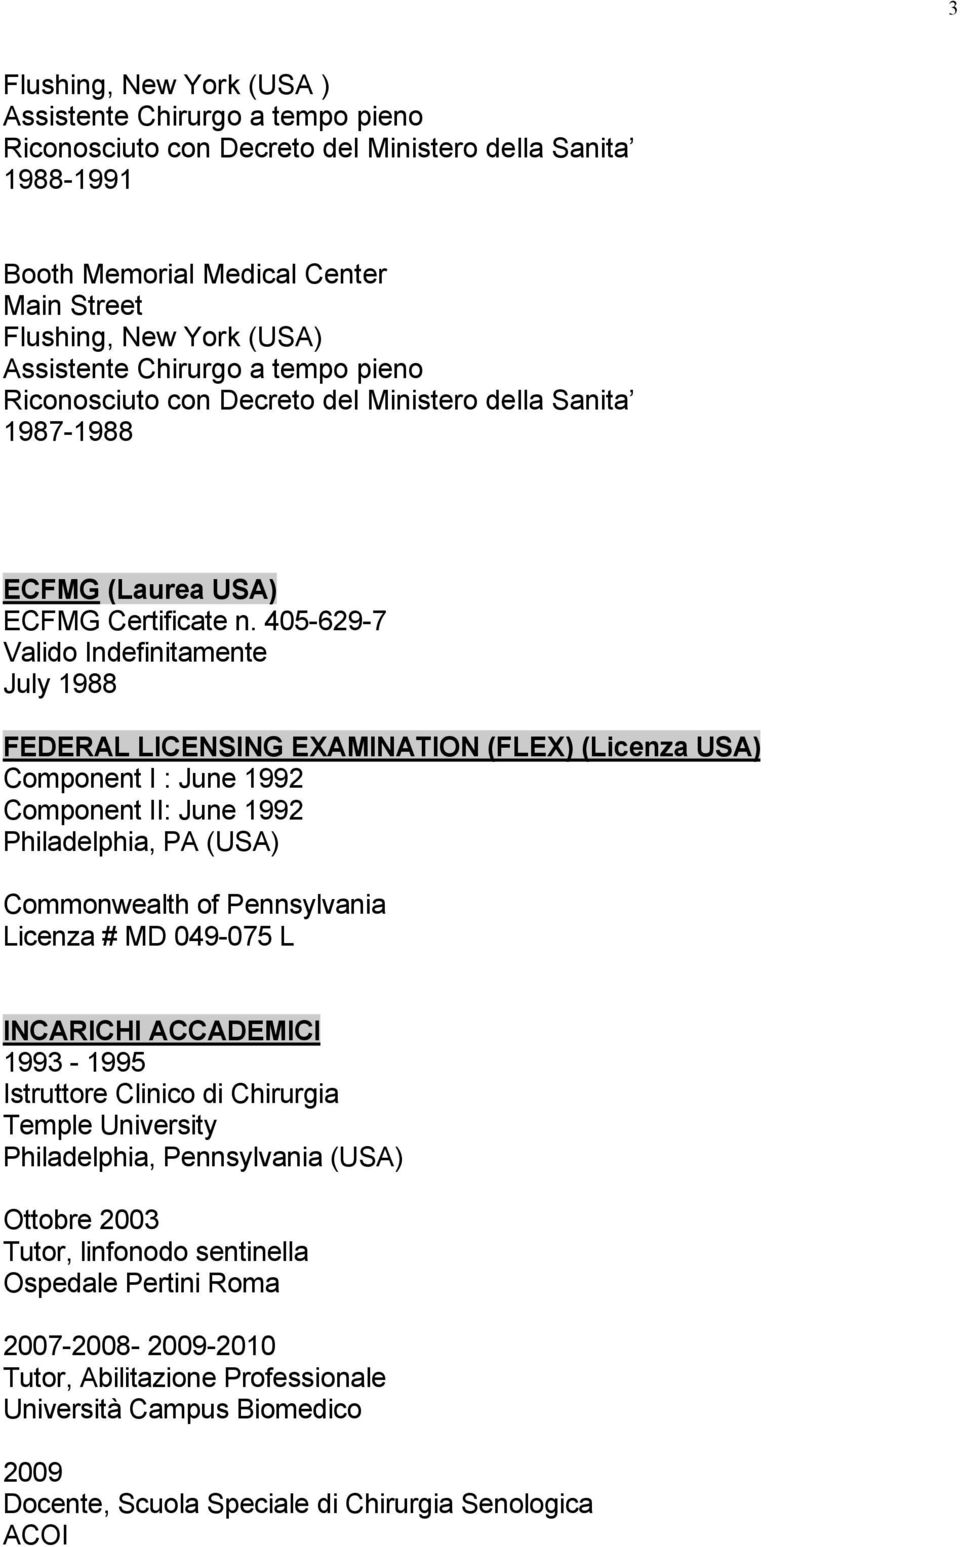 405-629-7 Valido Indefinitamente July 1988 FEDERAL LICENSING EXAMINATION (FLEX) (Licenza USA) Component I : June 1992 Component II: June 1992 Philadelphia, PA (USA) Commonwealth of Pennsylvania